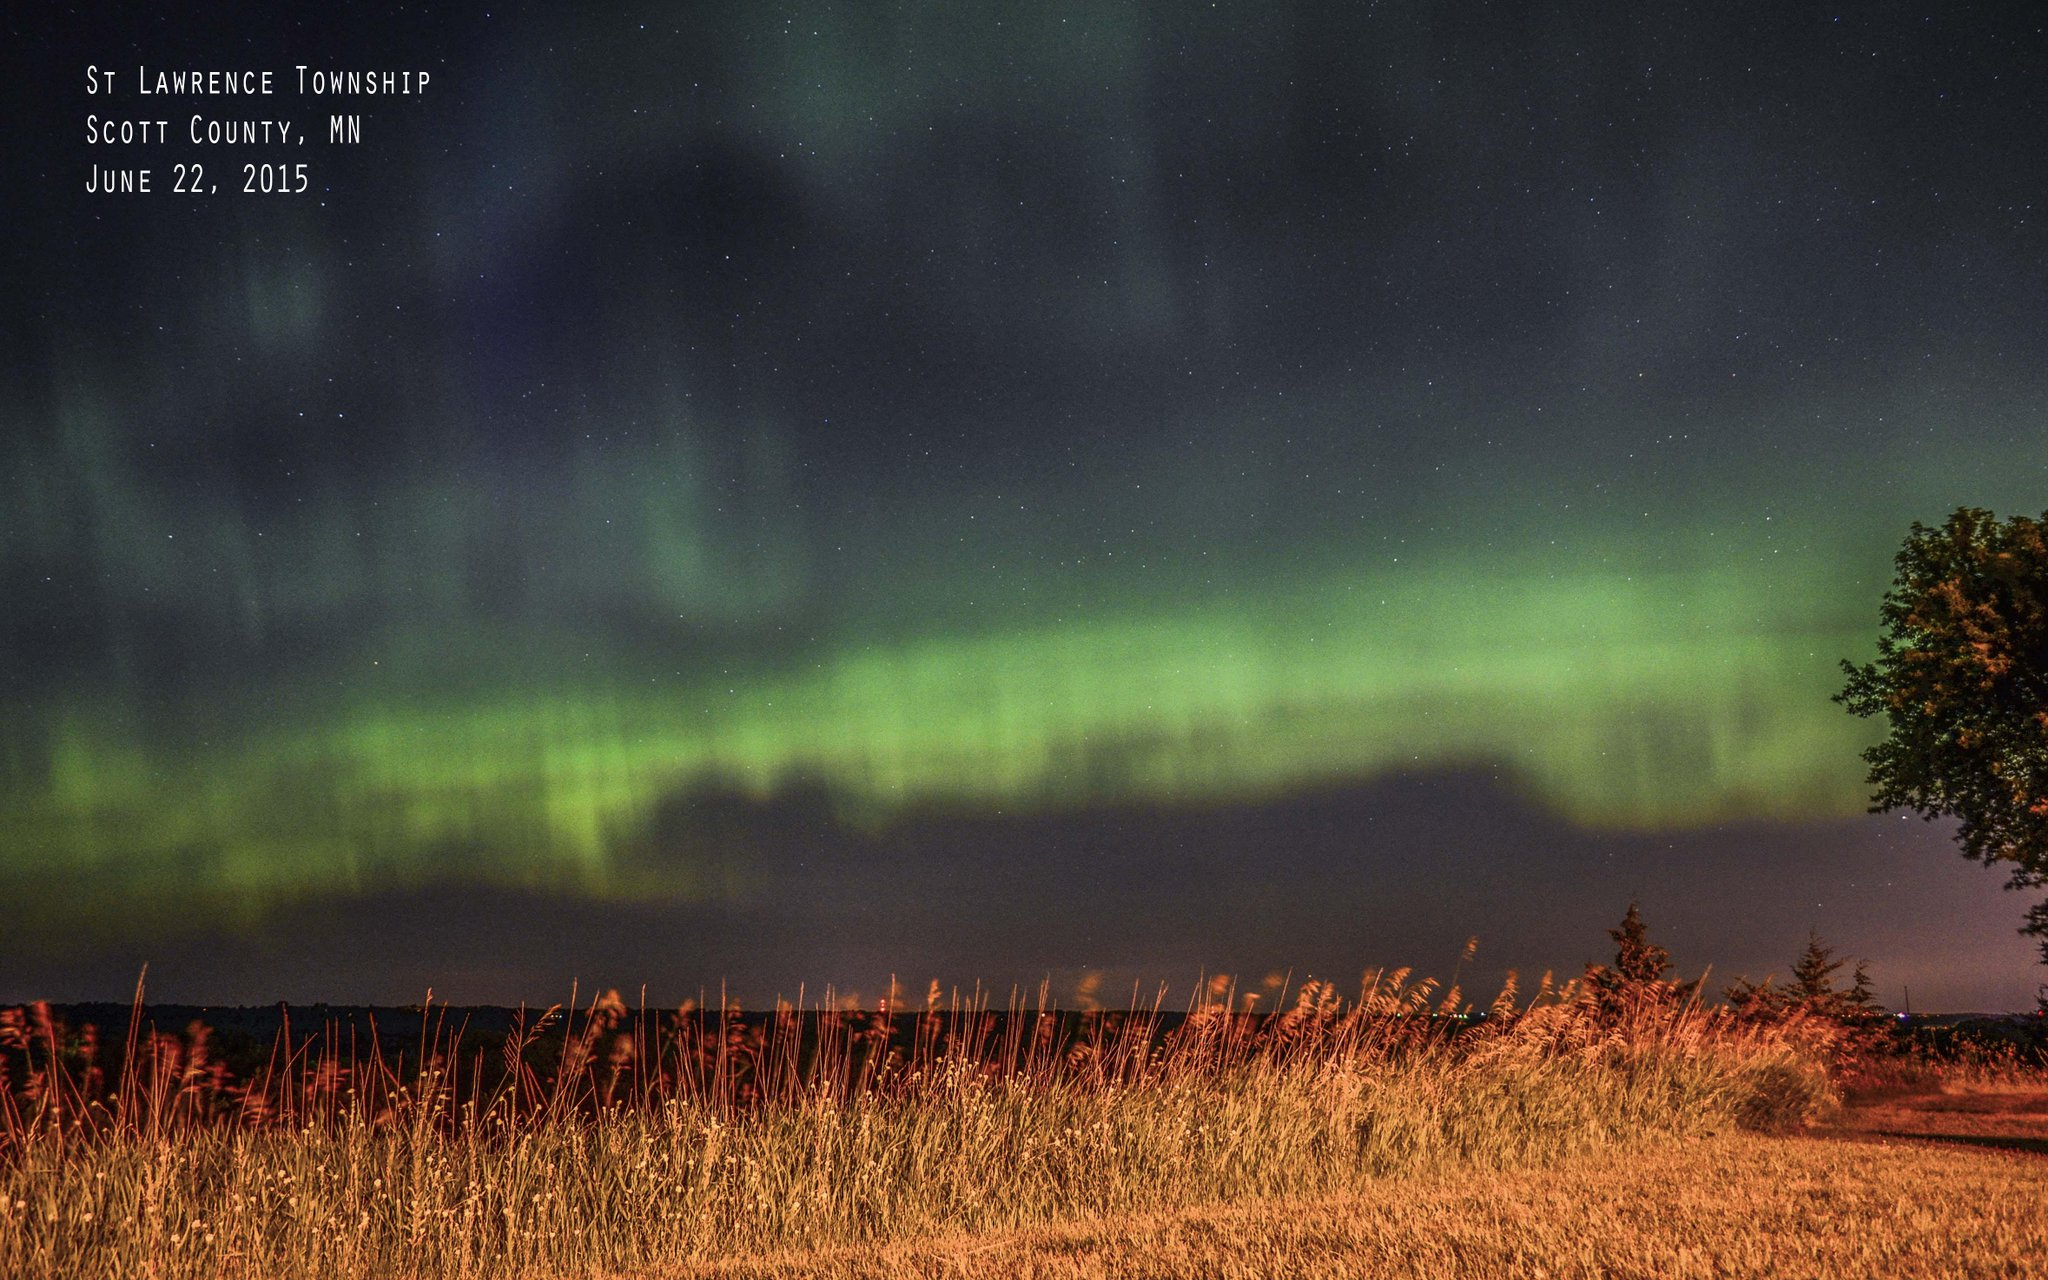 northern lights in scott county, mn near Minneapolis, MN